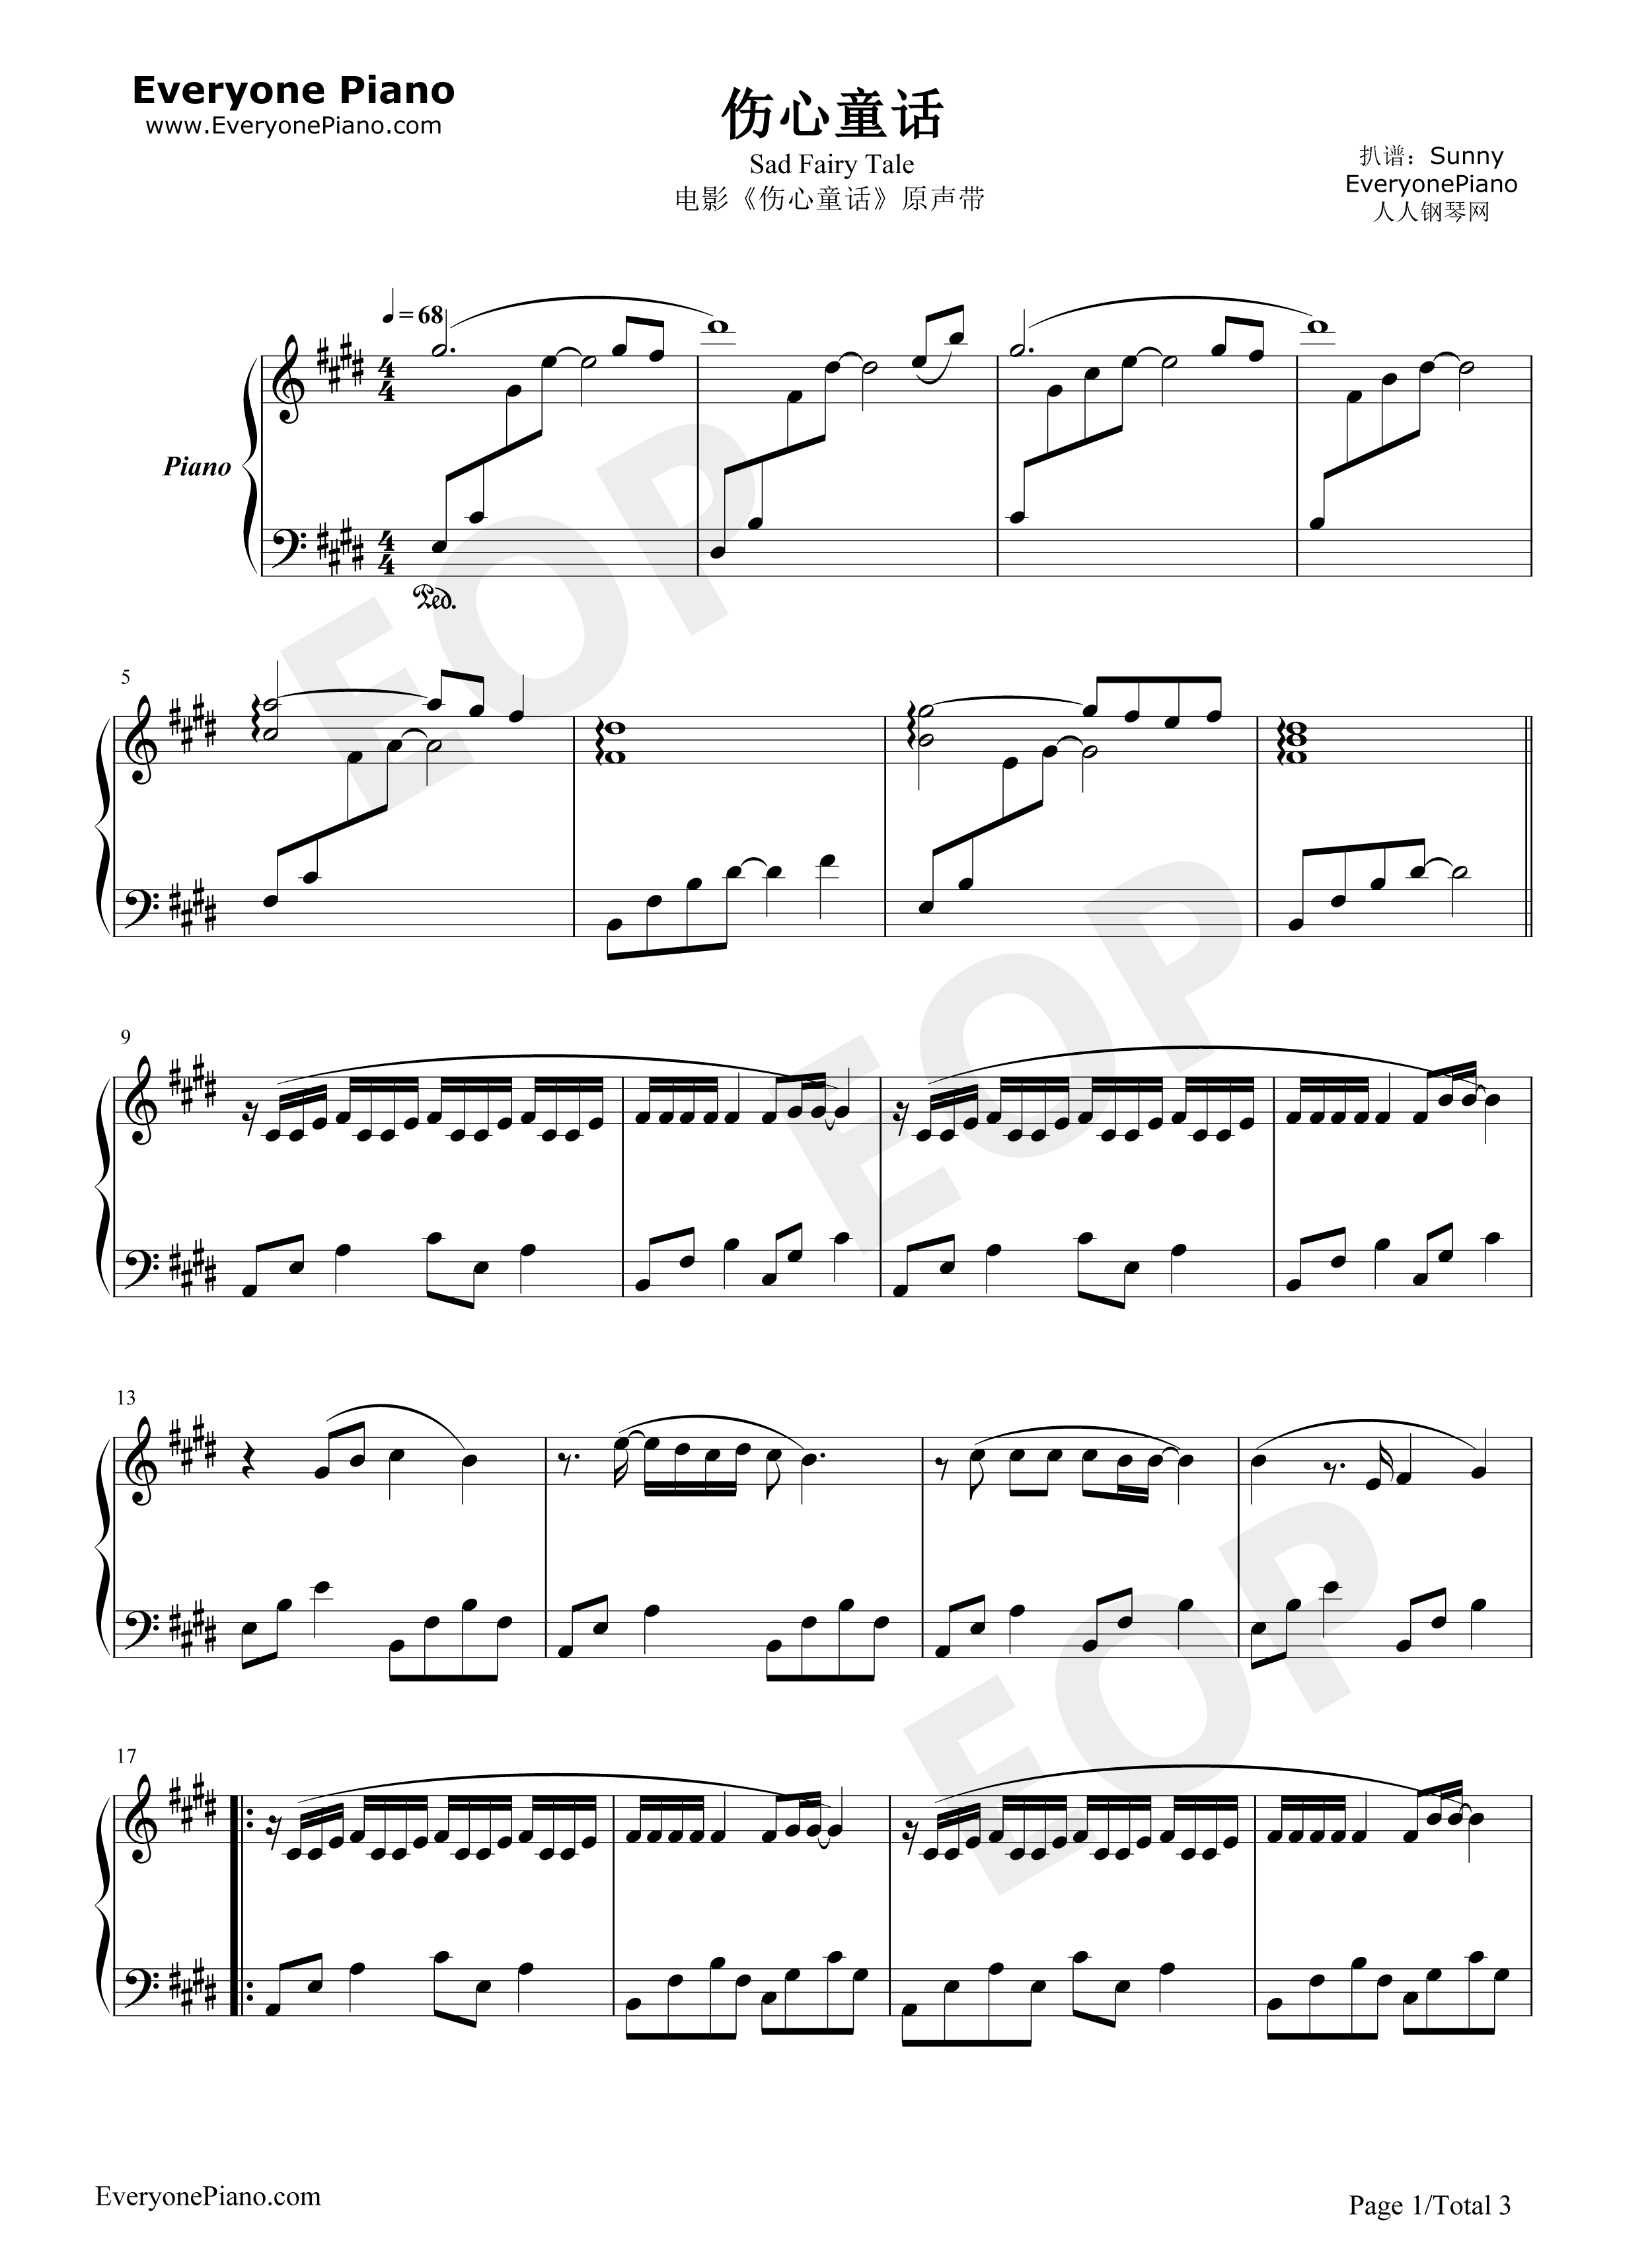 Sad fairy tale stave preview 1 free piano sheet music piano chords listen now print sheet sad fairy tale stave preview 1 hexwebz Gallery